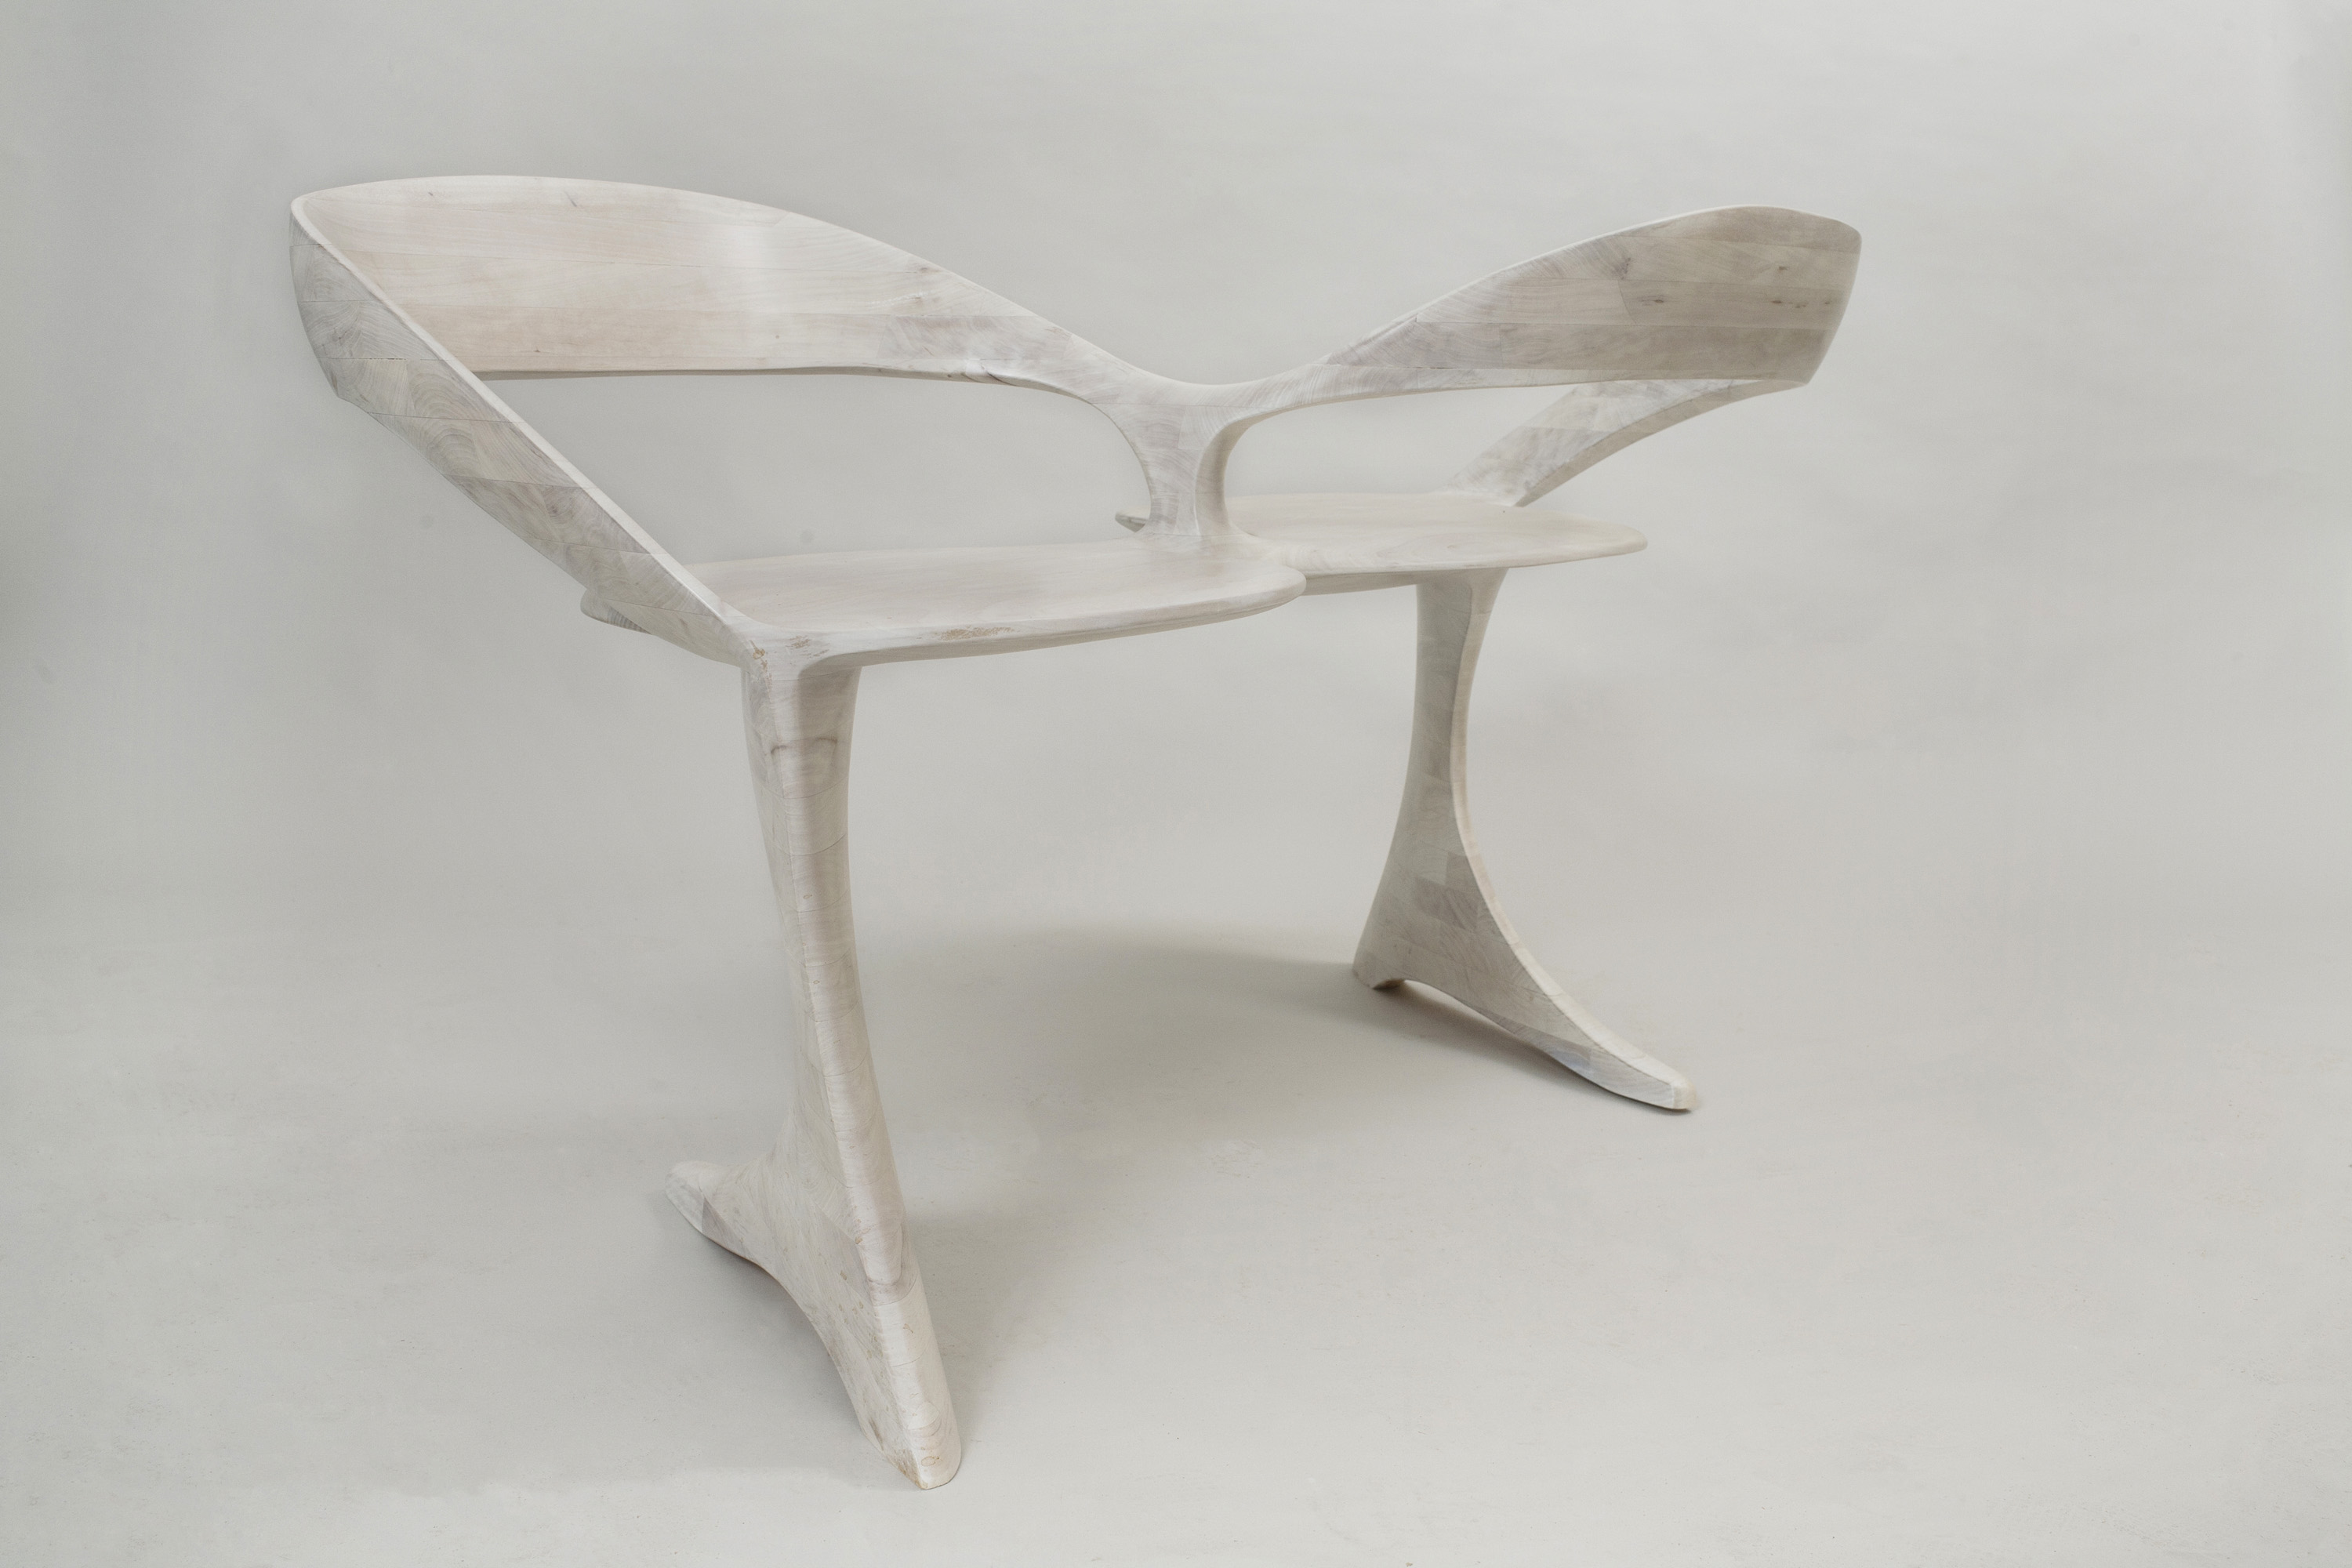 This picture shows a loveseat made of bleached cherry seen from three-quarters view